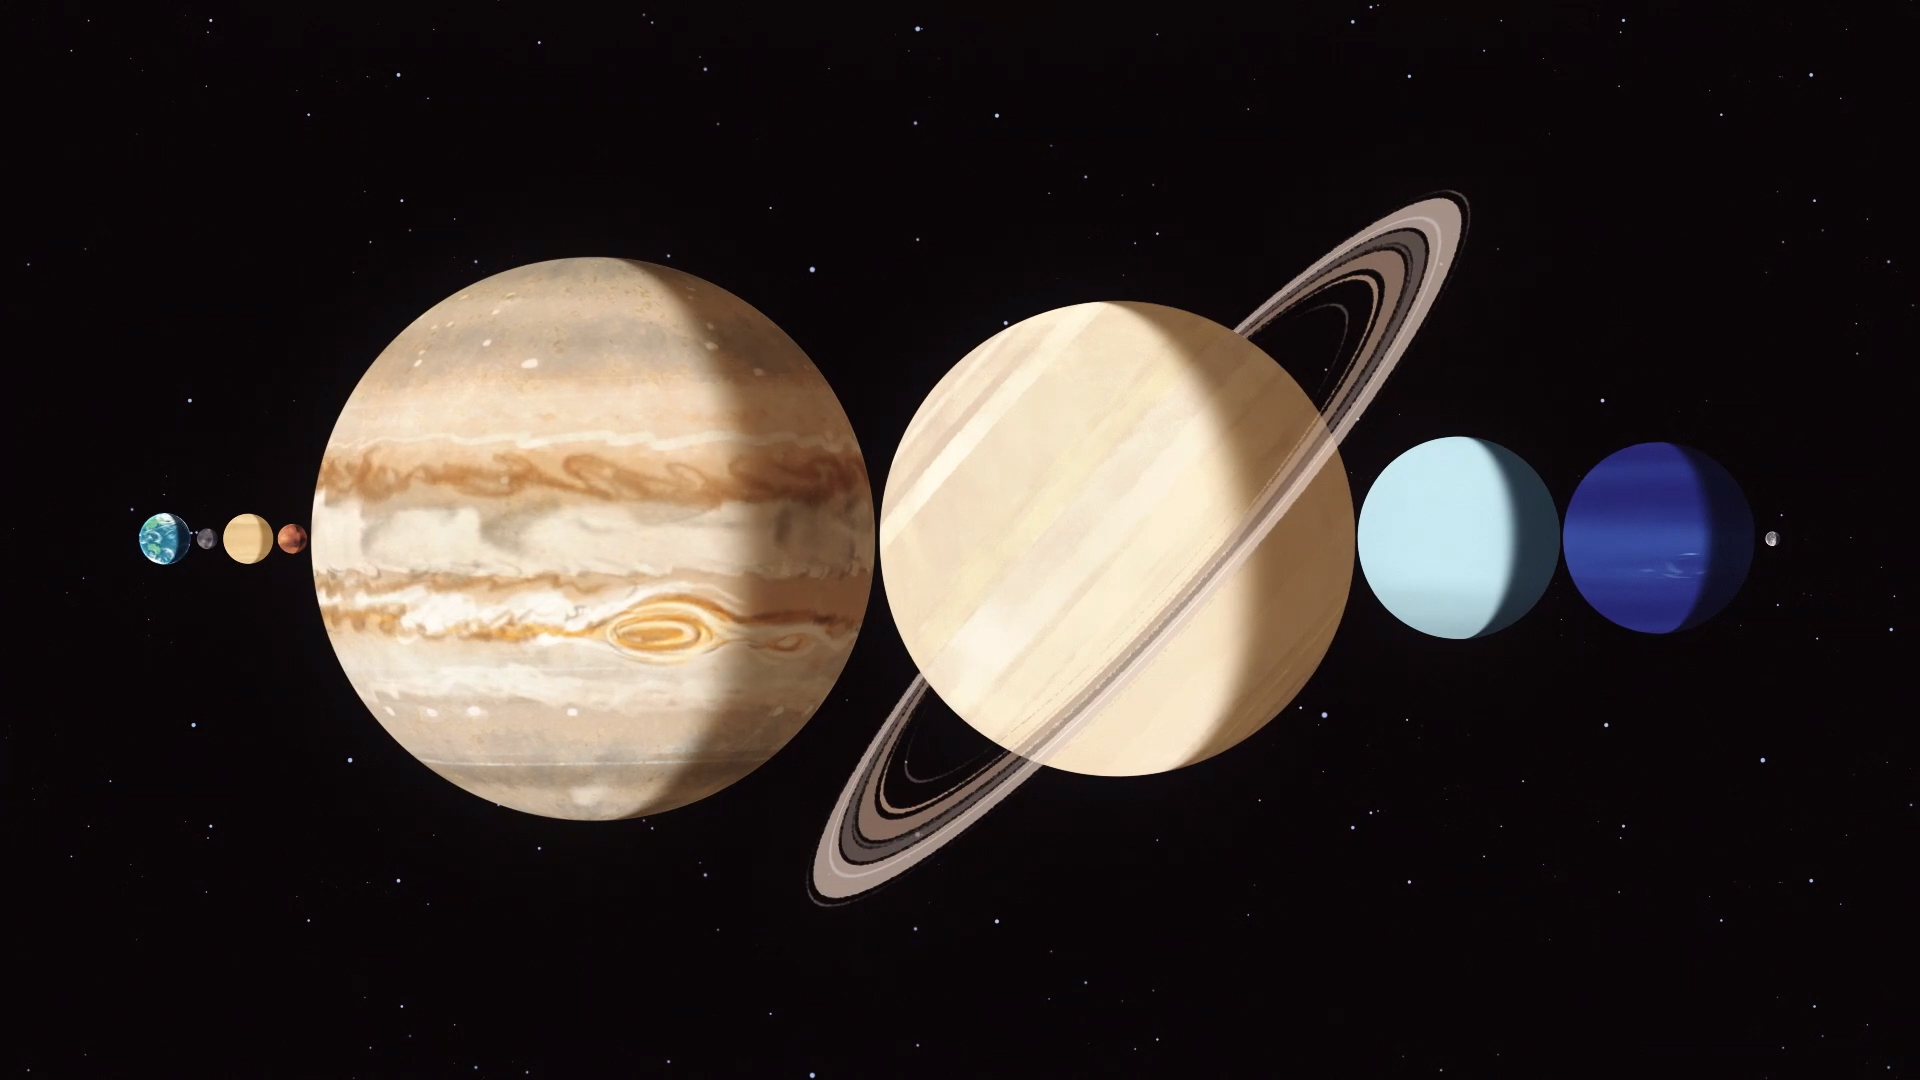 Illustration showing all the major planets together in a line between the Earth and the Moon.